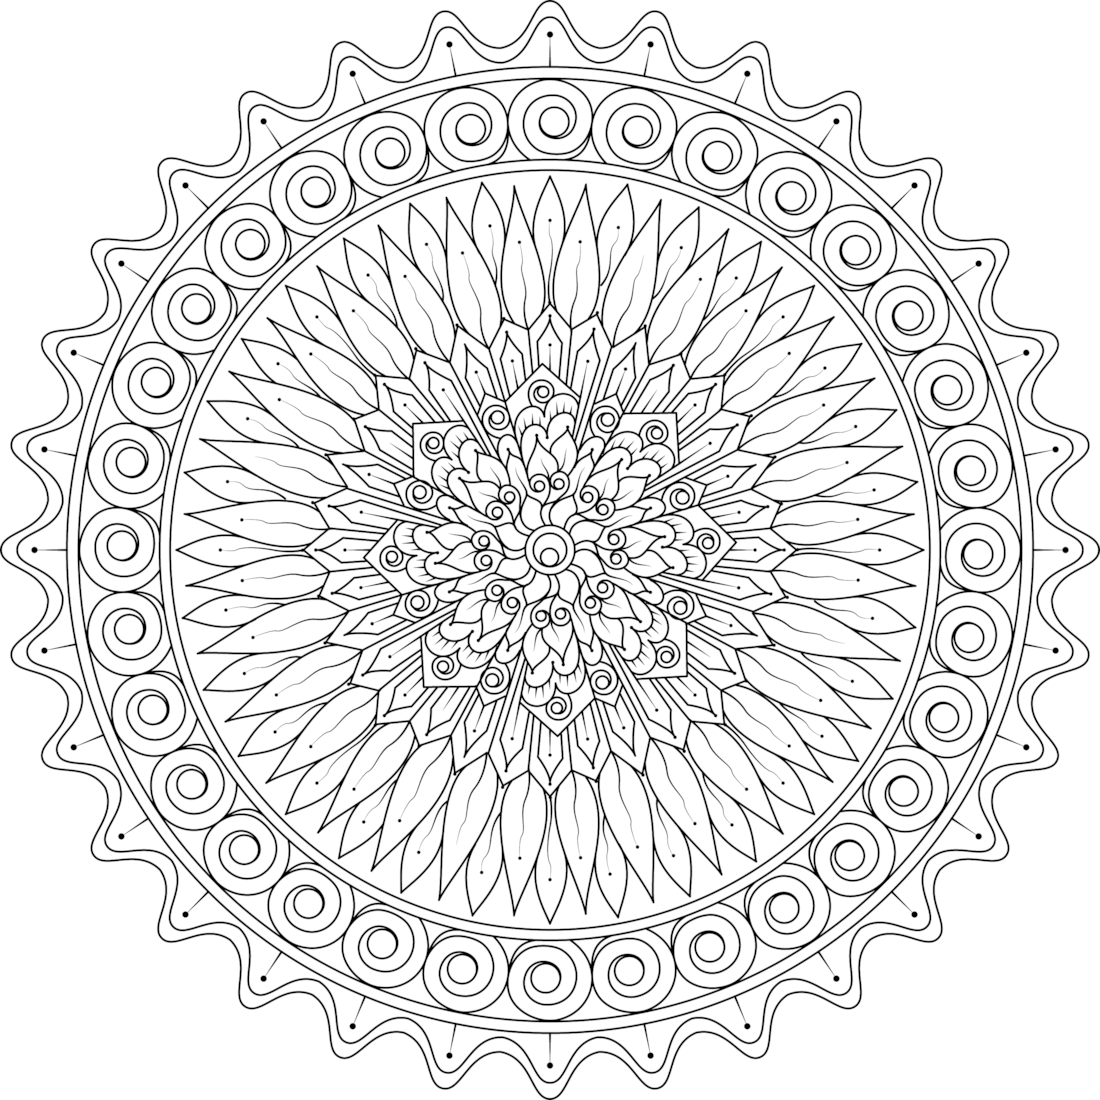 Kindled love mandala coloring page by varda k for Love mandala coloring pages